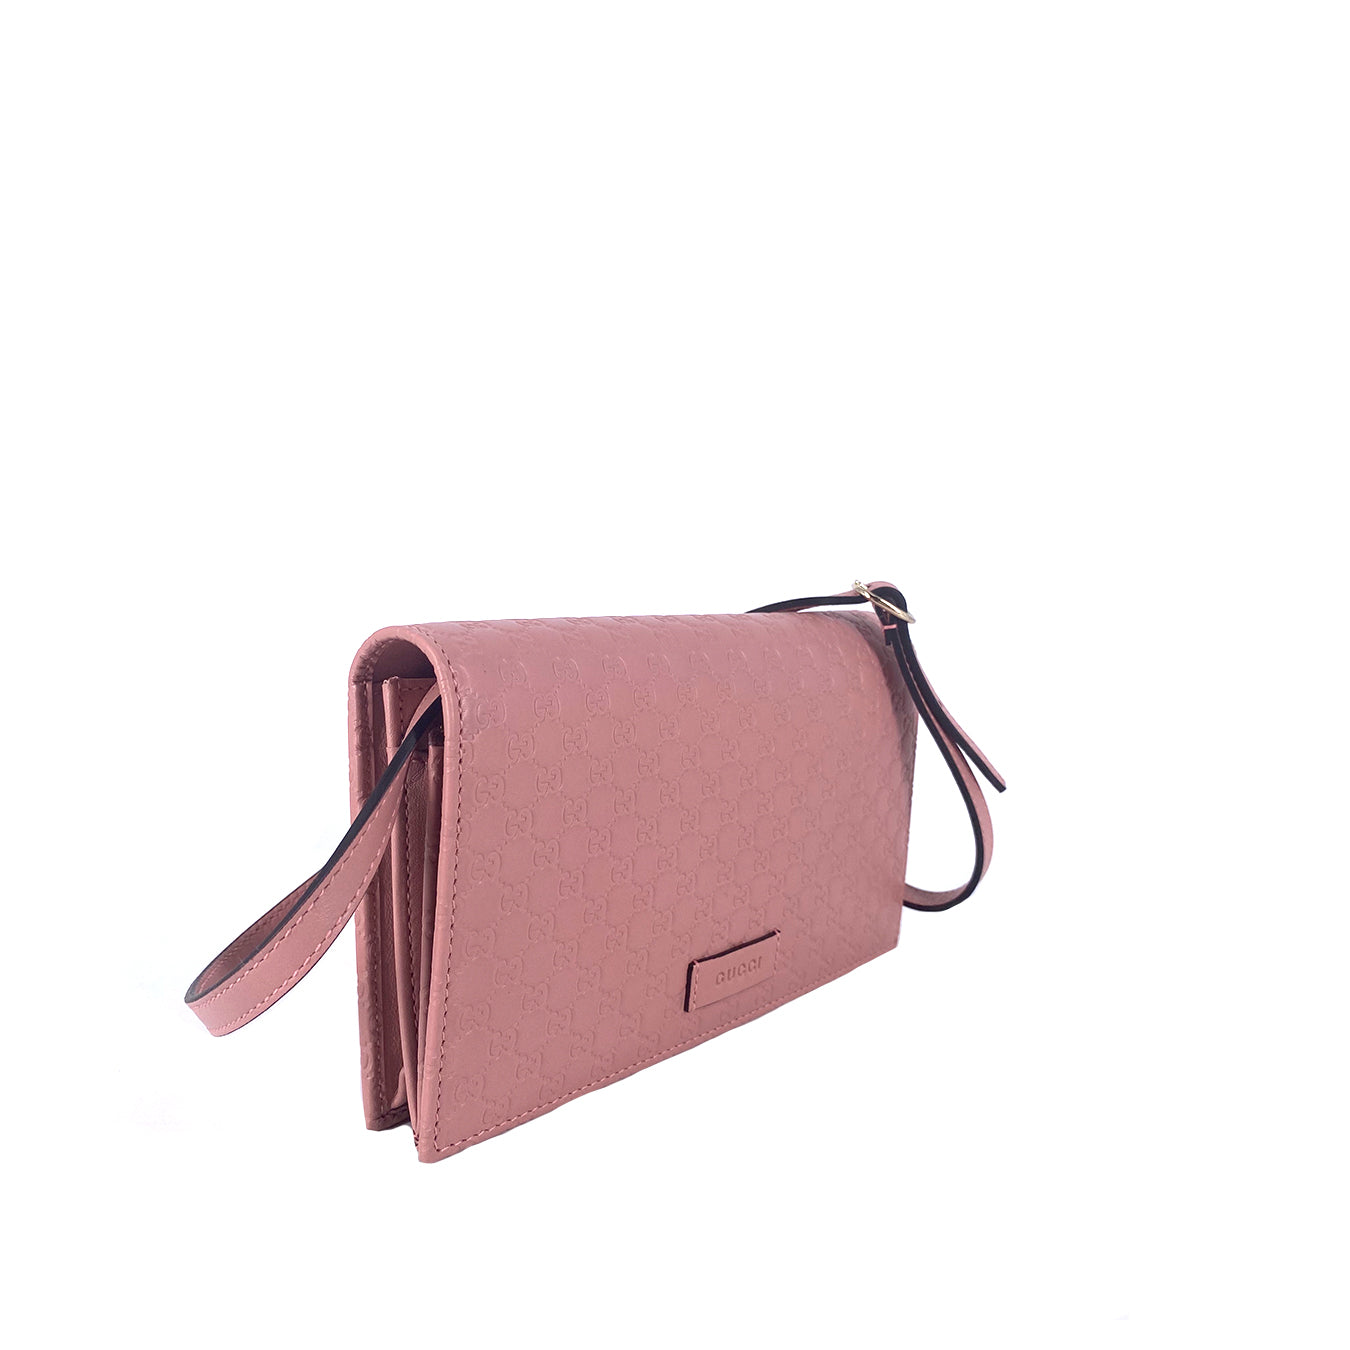 Gucci Microguccissima Leather Interlocking WOC Pink